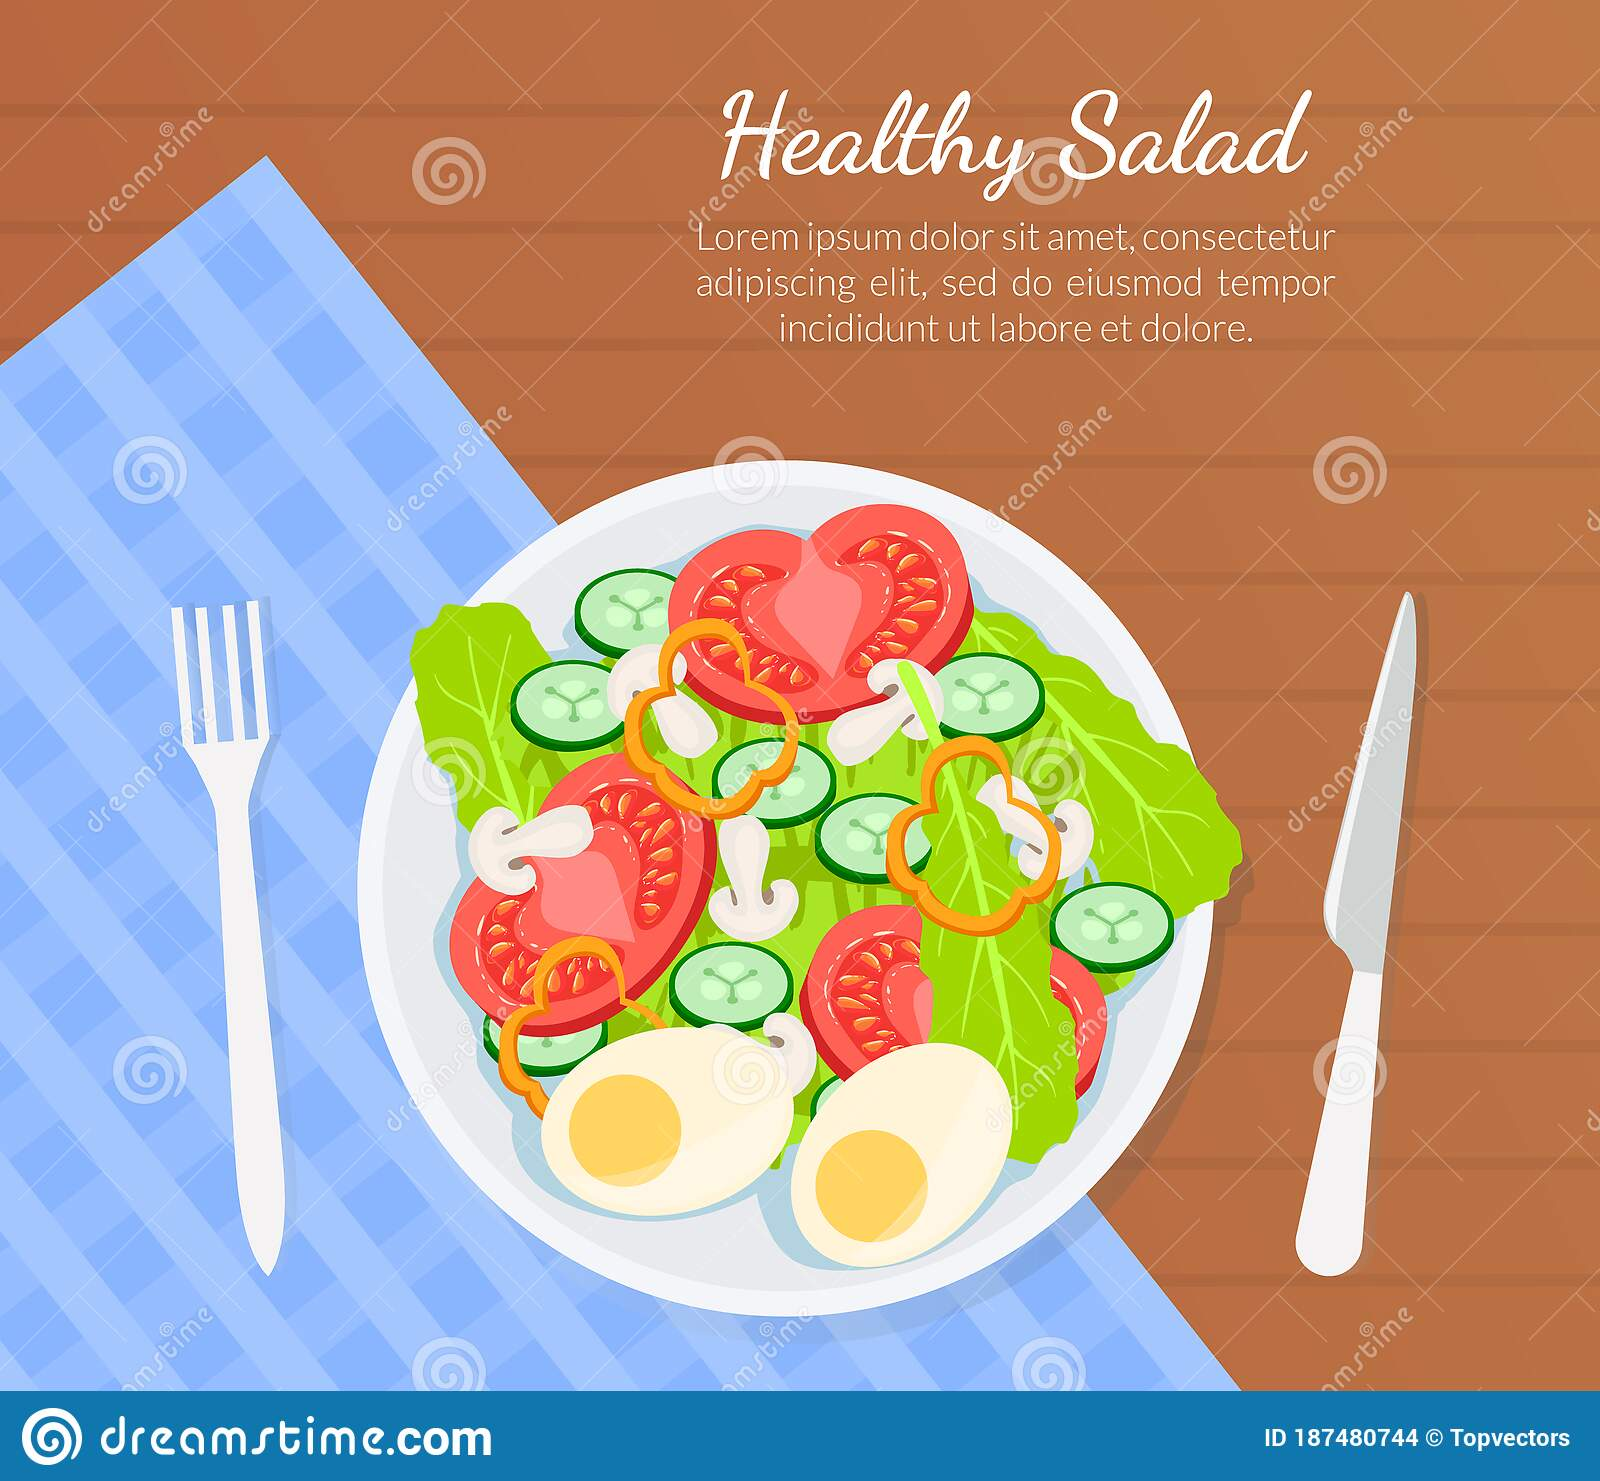 Healthy Salad Banner Template Top View Of Delicious Organic Food On Wooden Surface Vector Illustration Stock Vector Illustration Of Food Poster 187480744